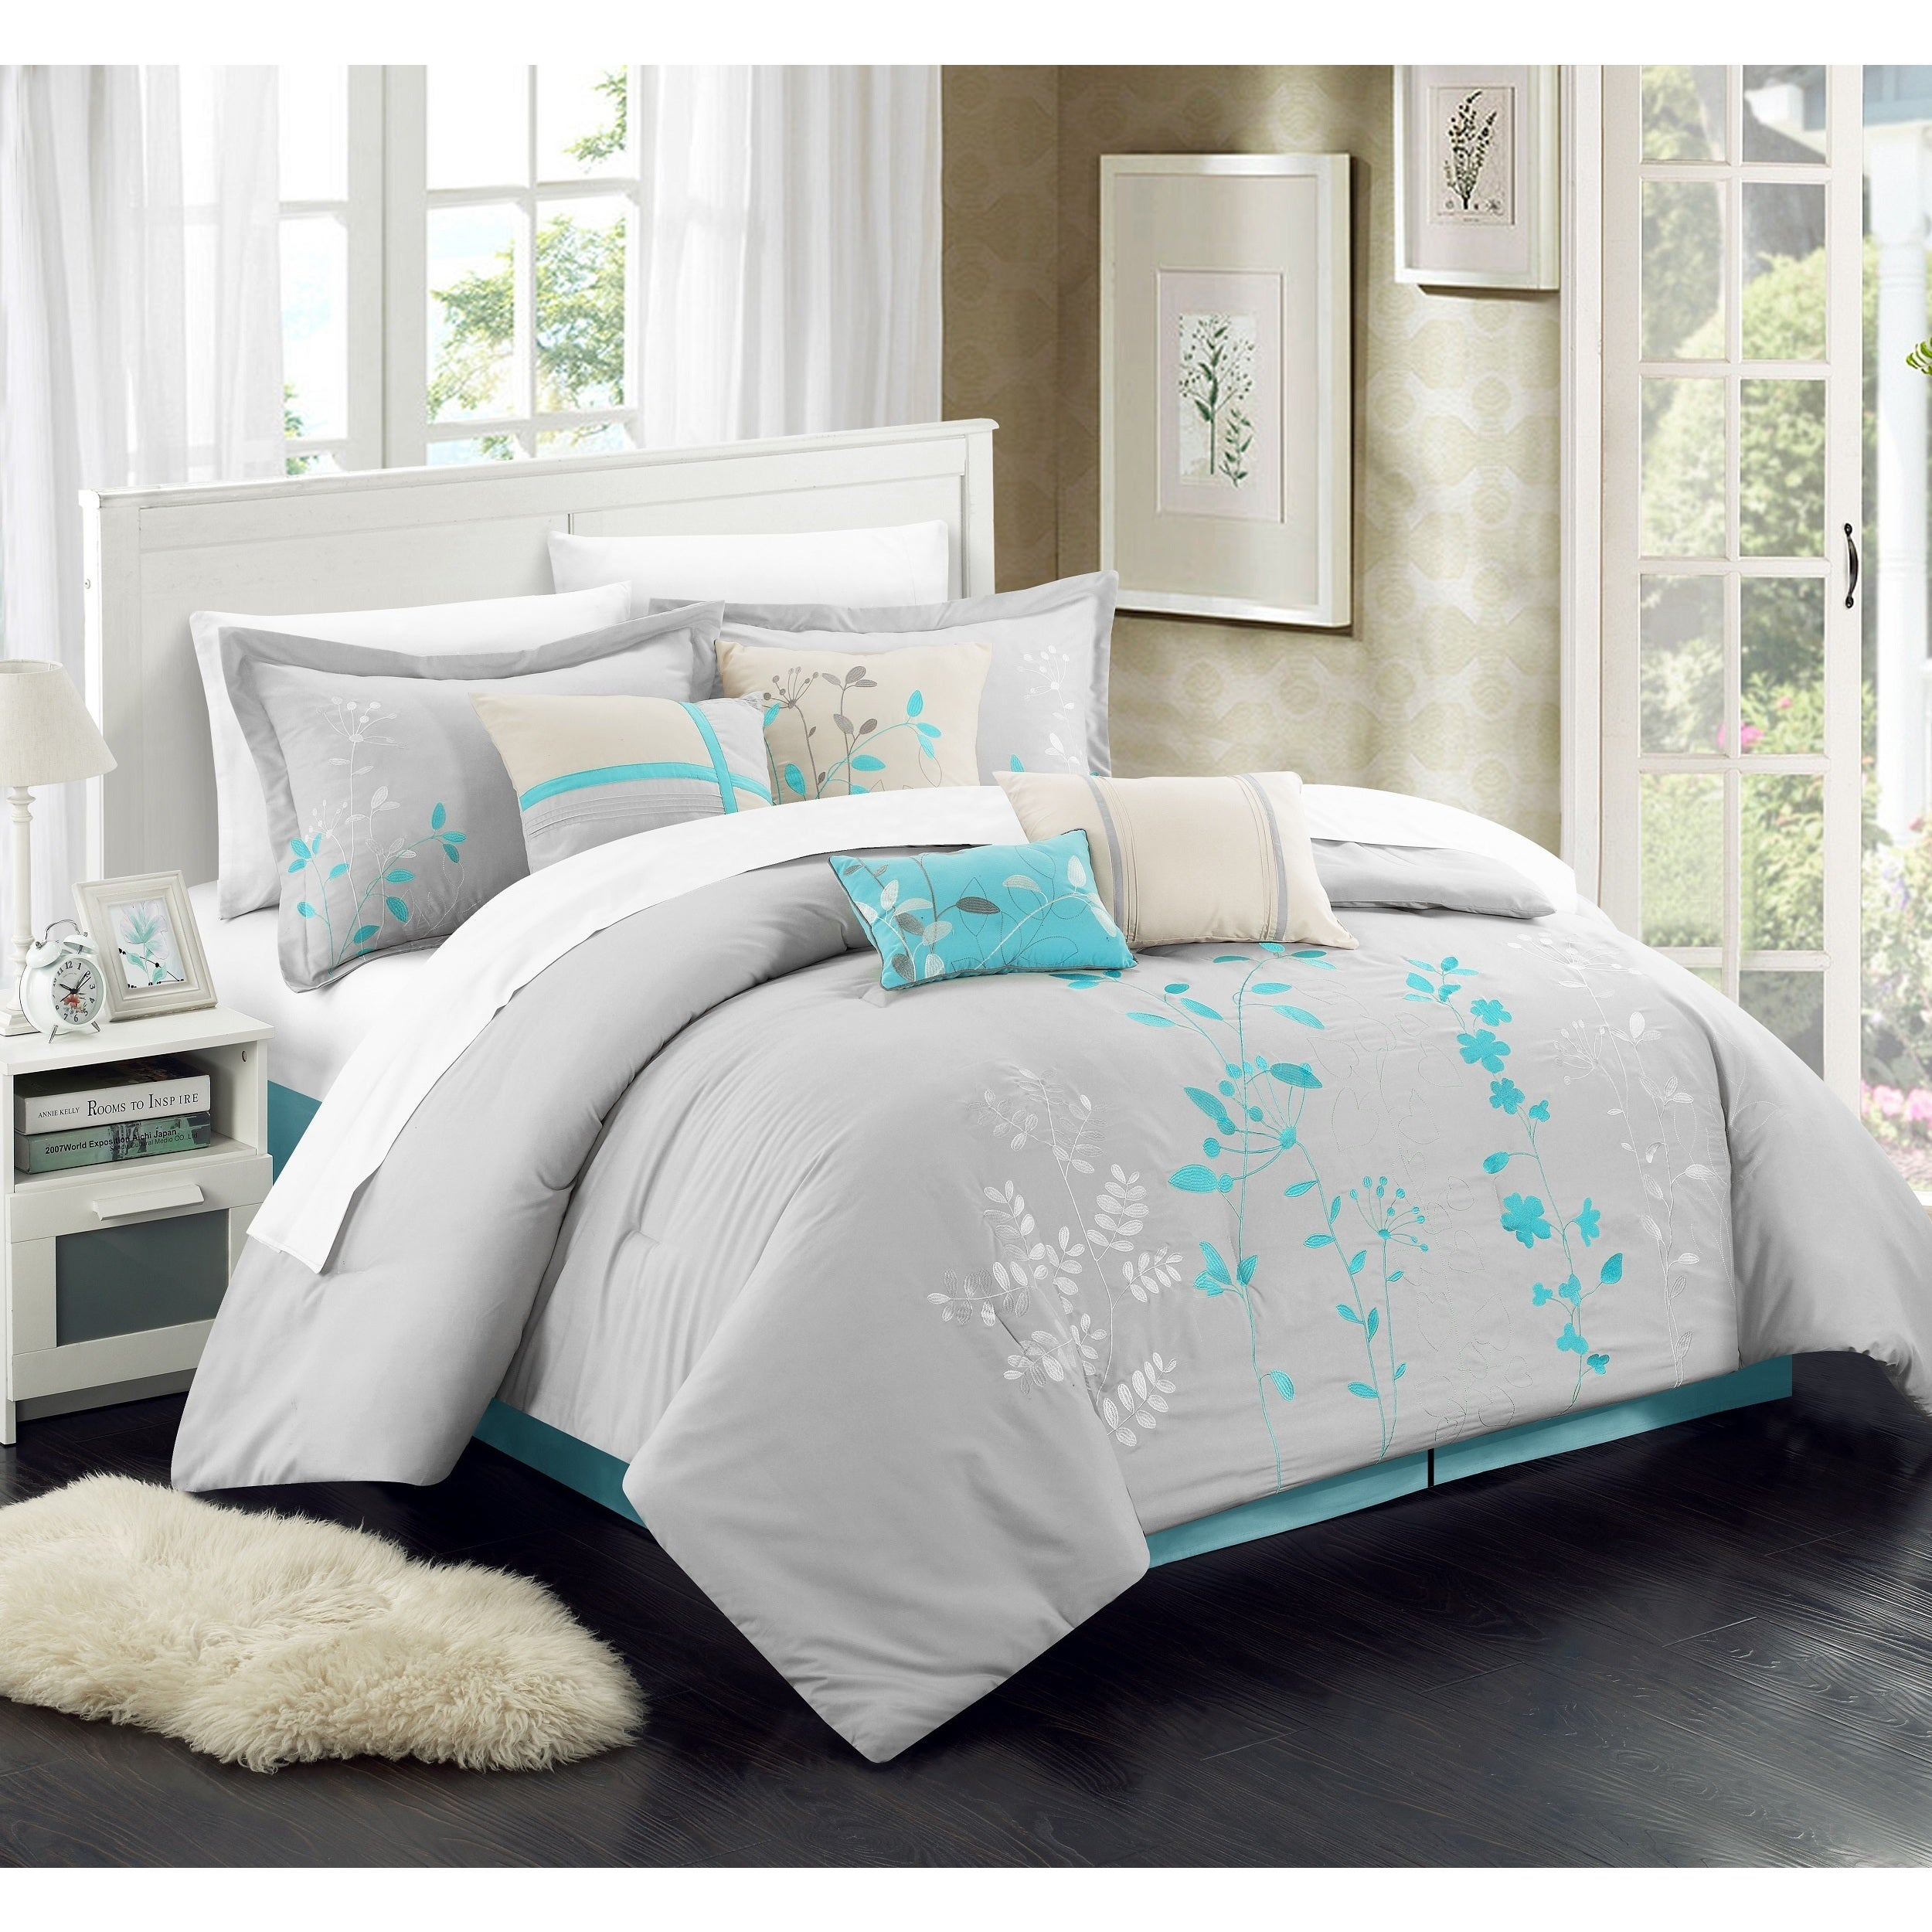 Shop Chic Home Fortuno Turquoise Embroidered 12-piece Bed in a Bag ...